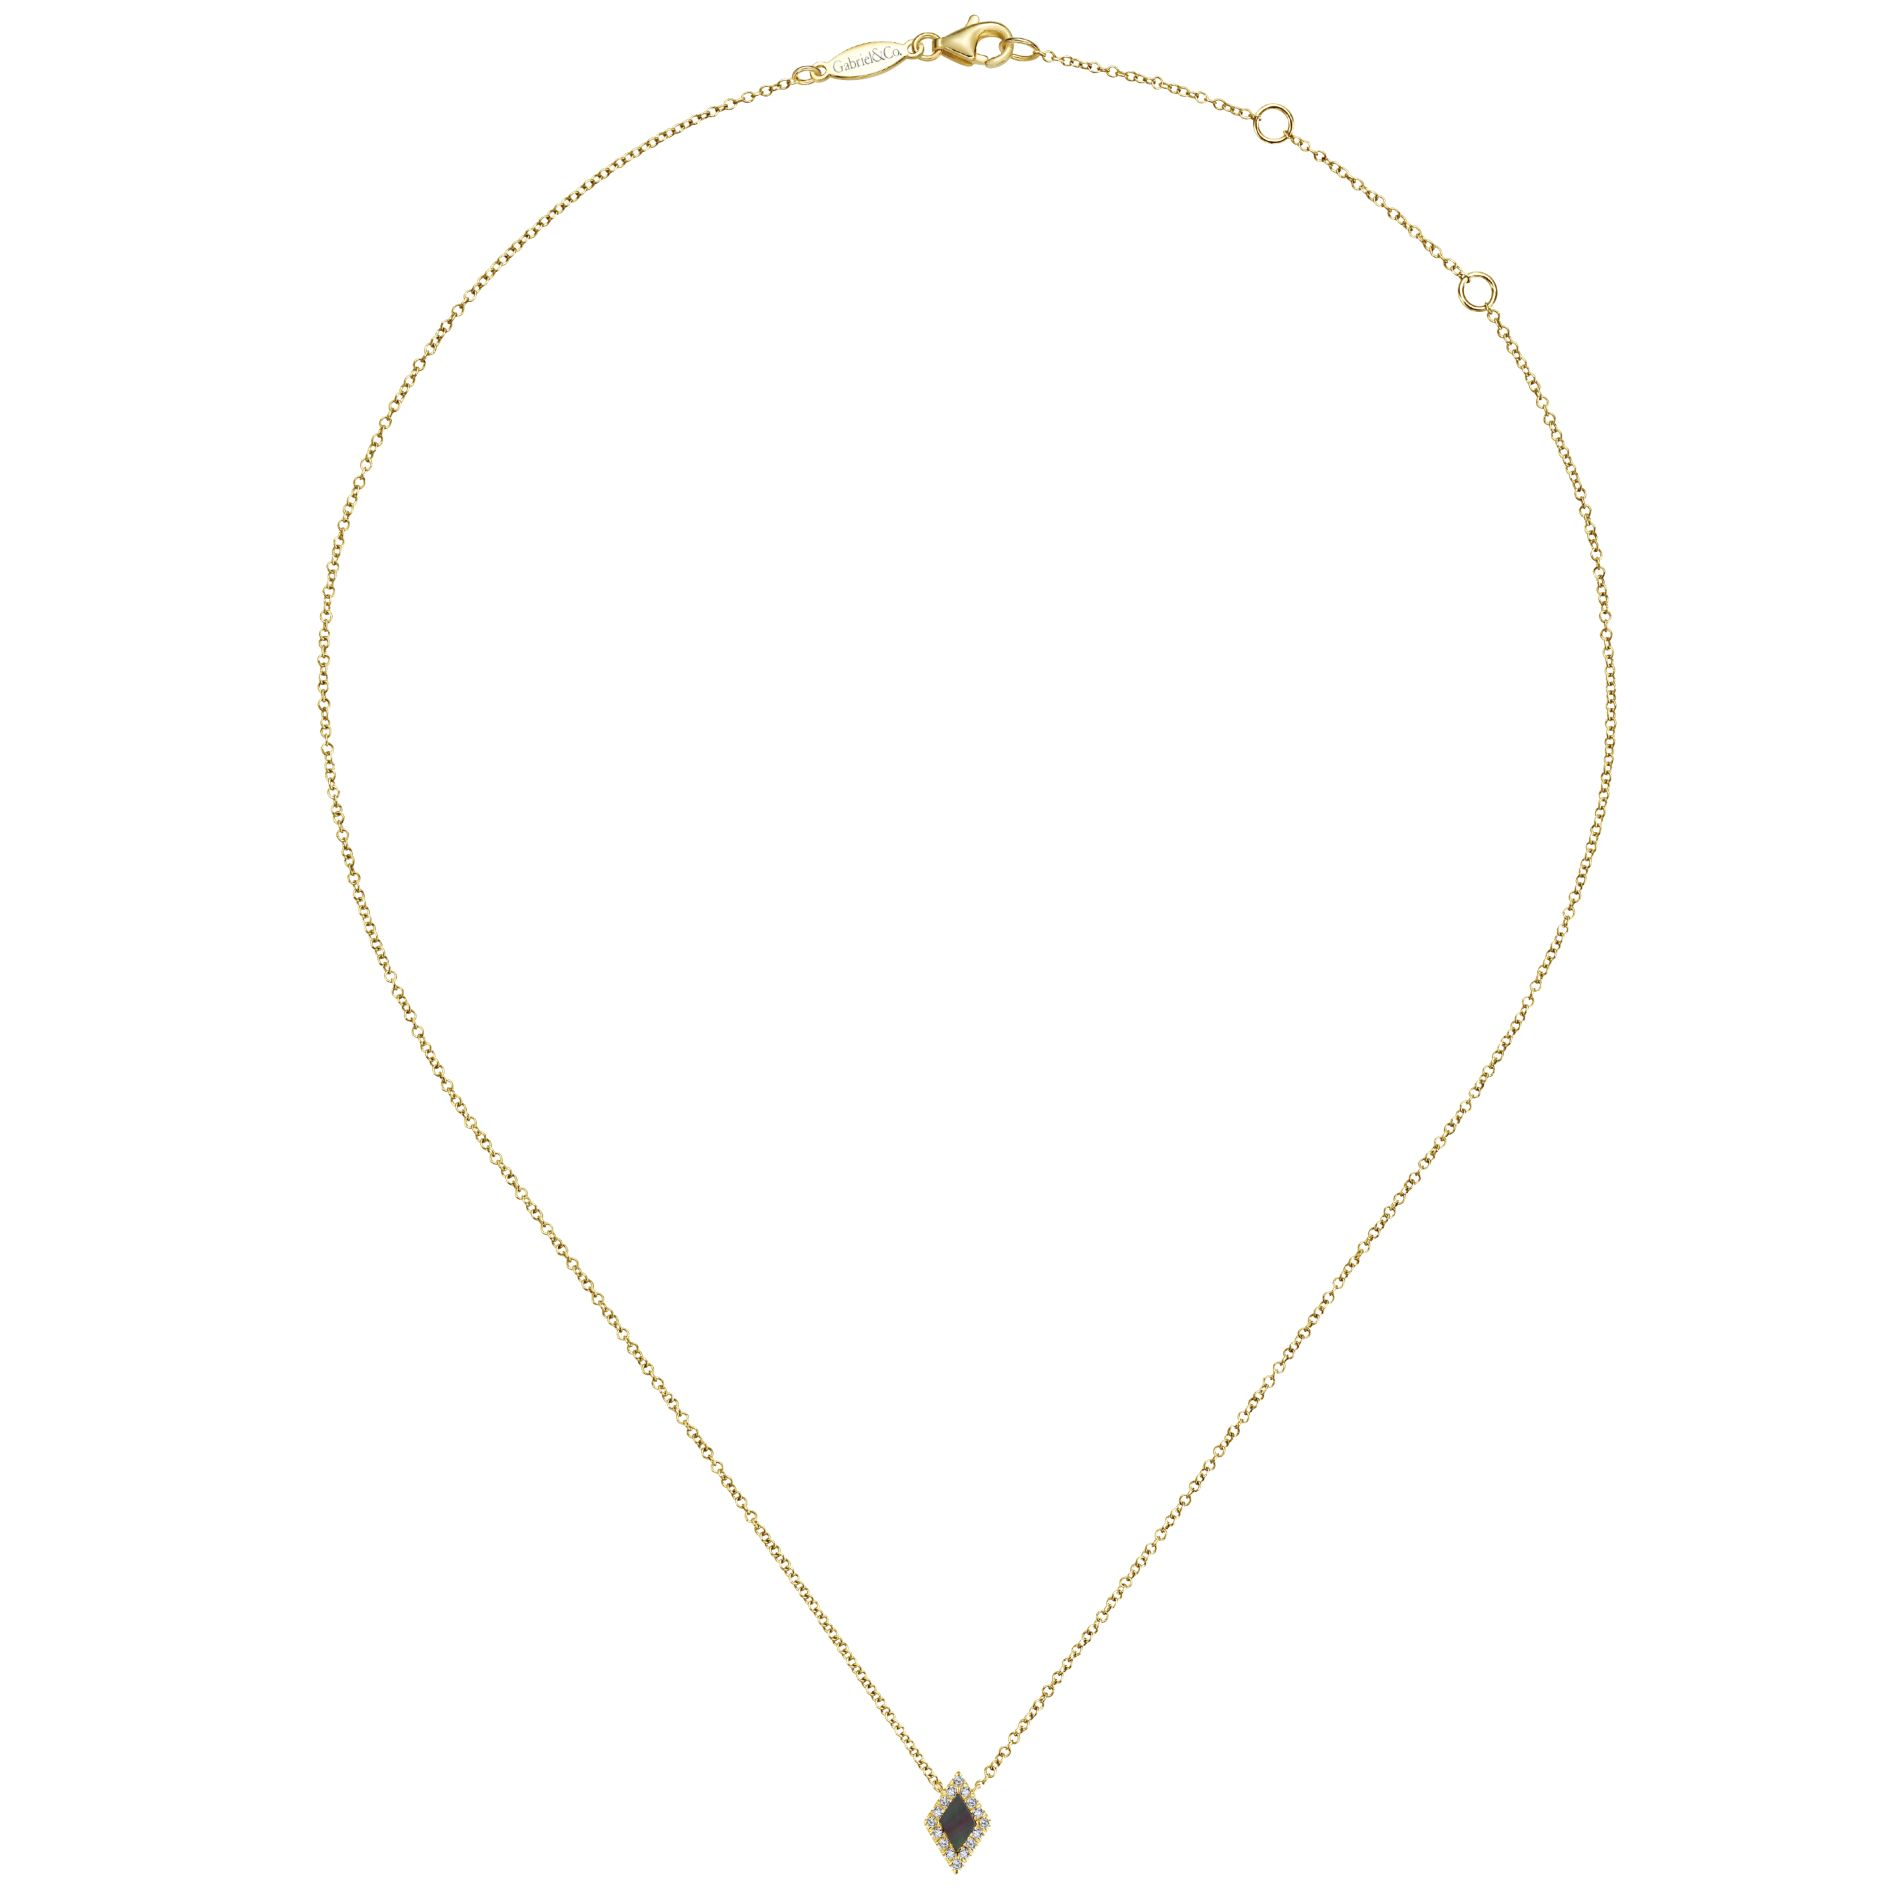 Necklaces - YELLOW GOLD FASHION DIAMOND BLACK MOTHER OF PEARL NECKLACE - image #2